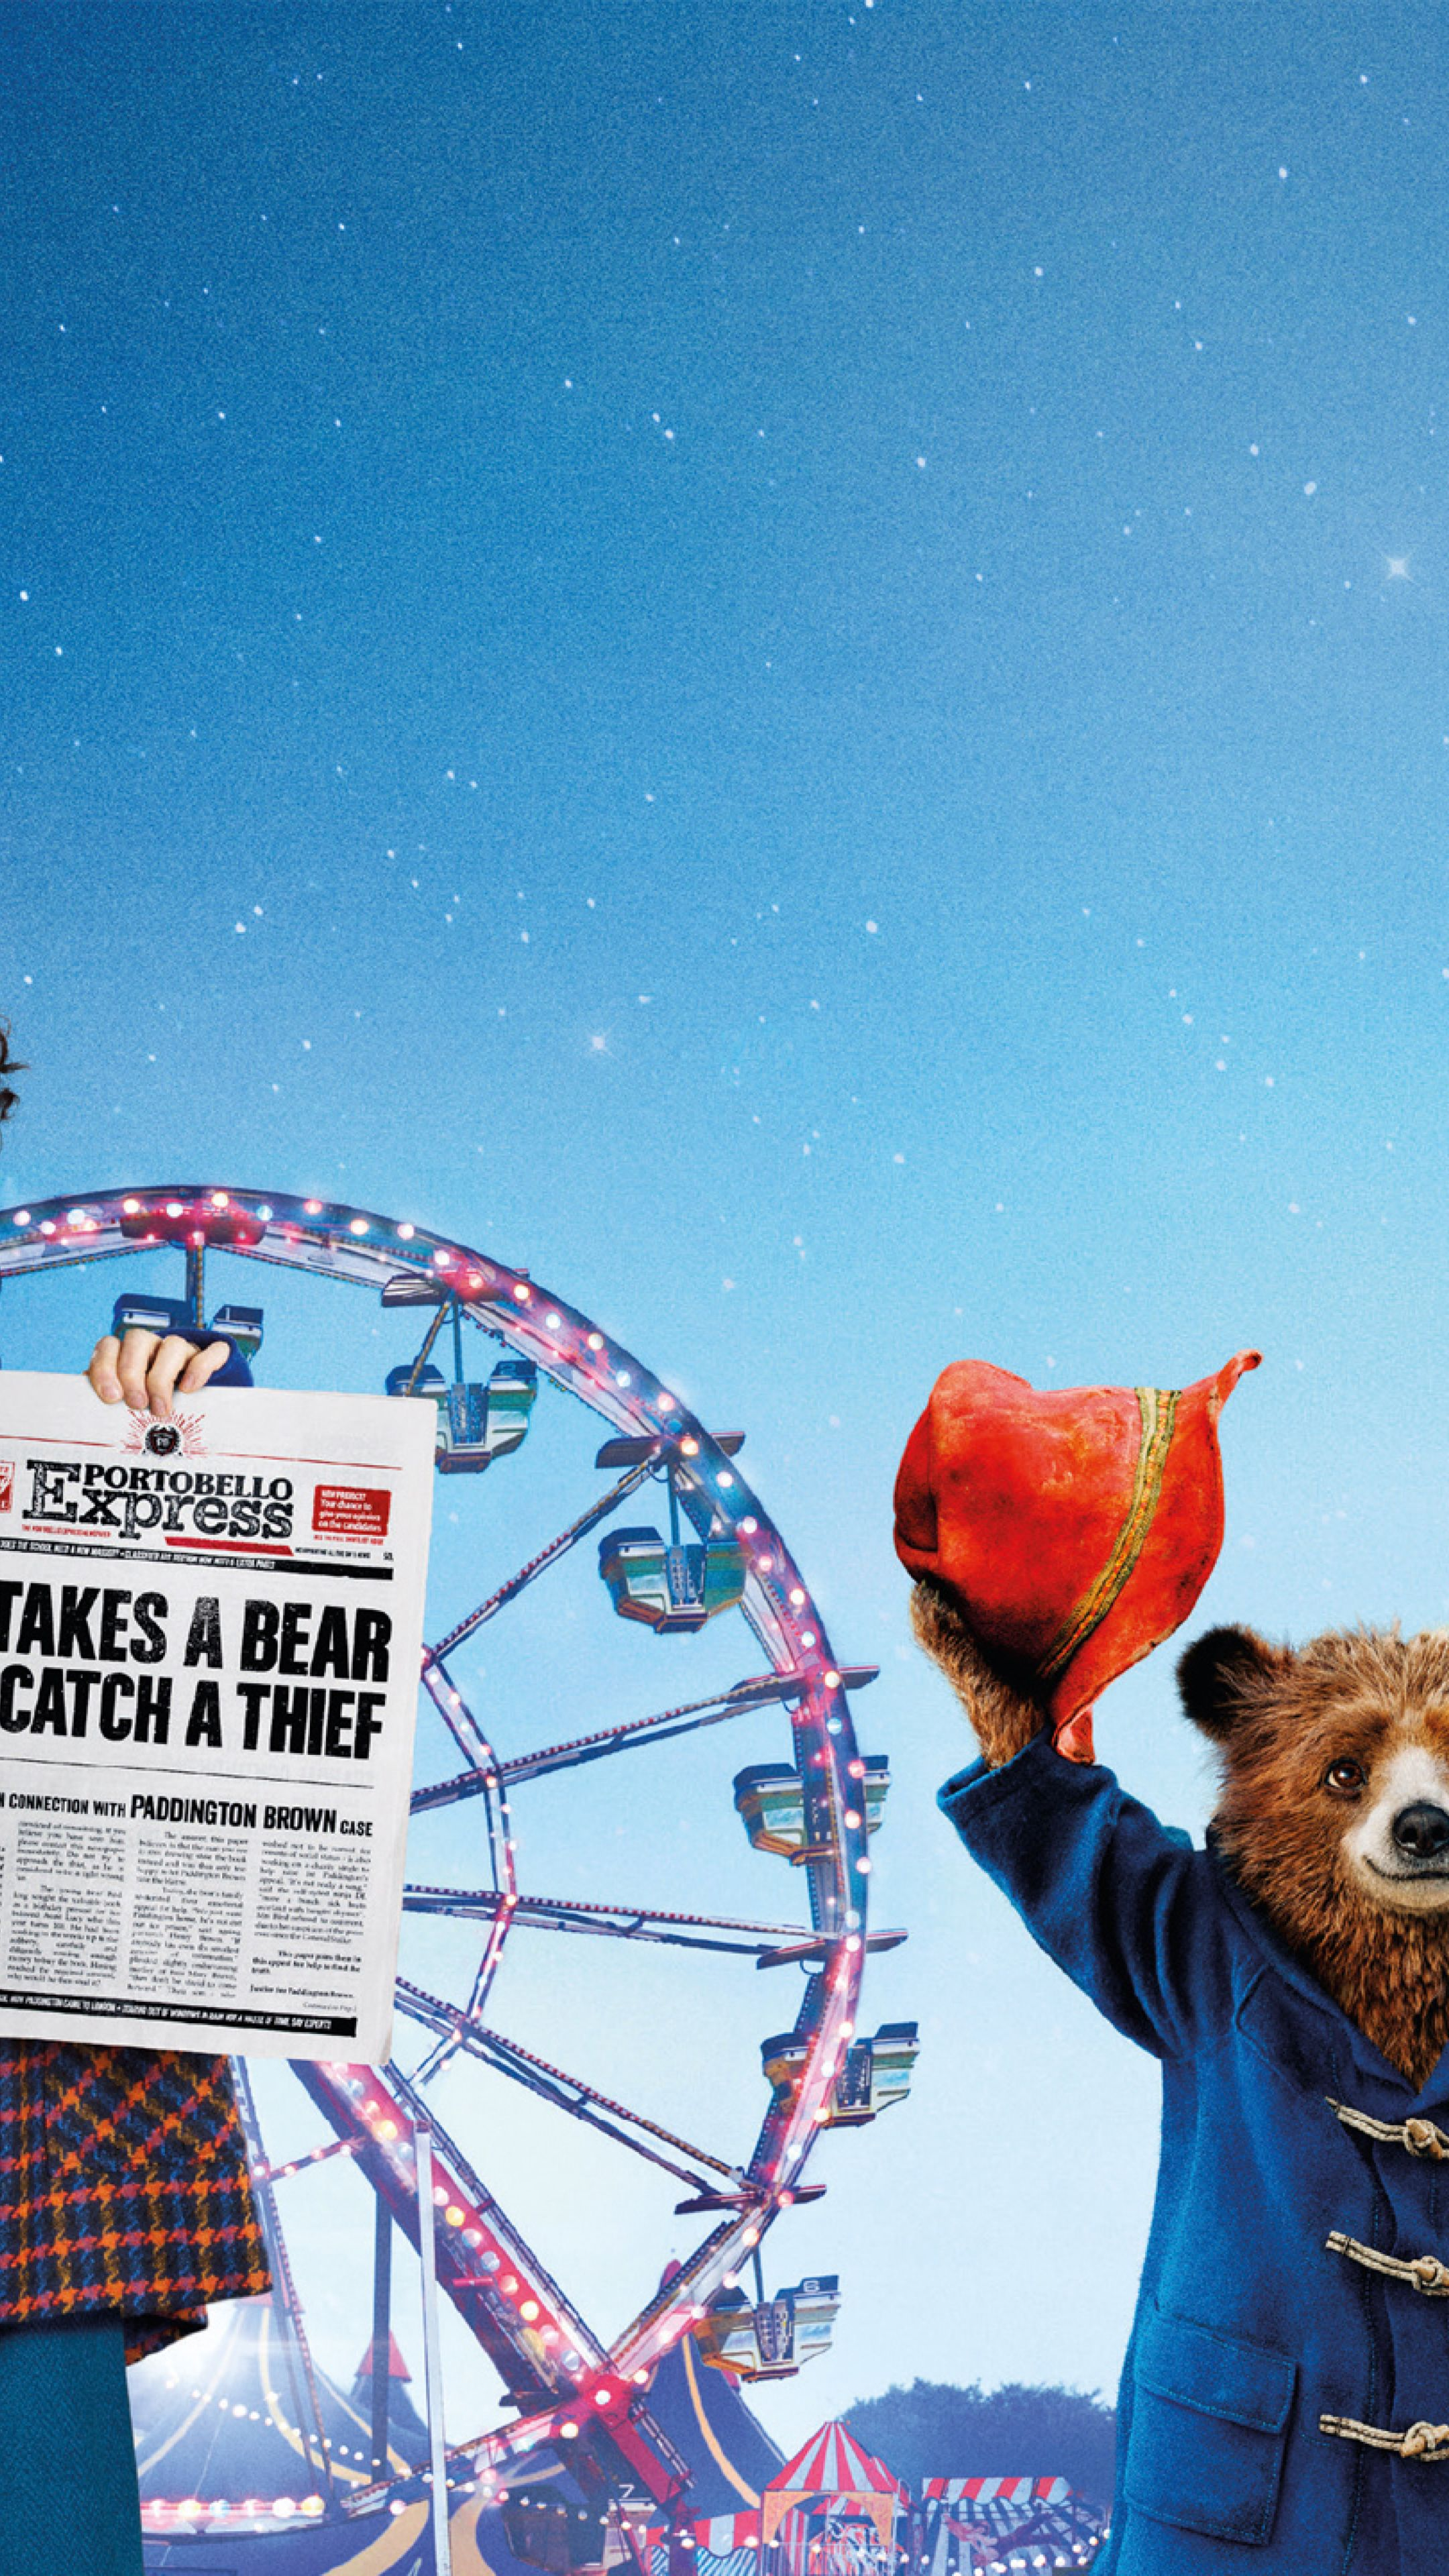 Download Paddington 2 Movie 2017 2160x3840 Resolution, Full HD 2K ...